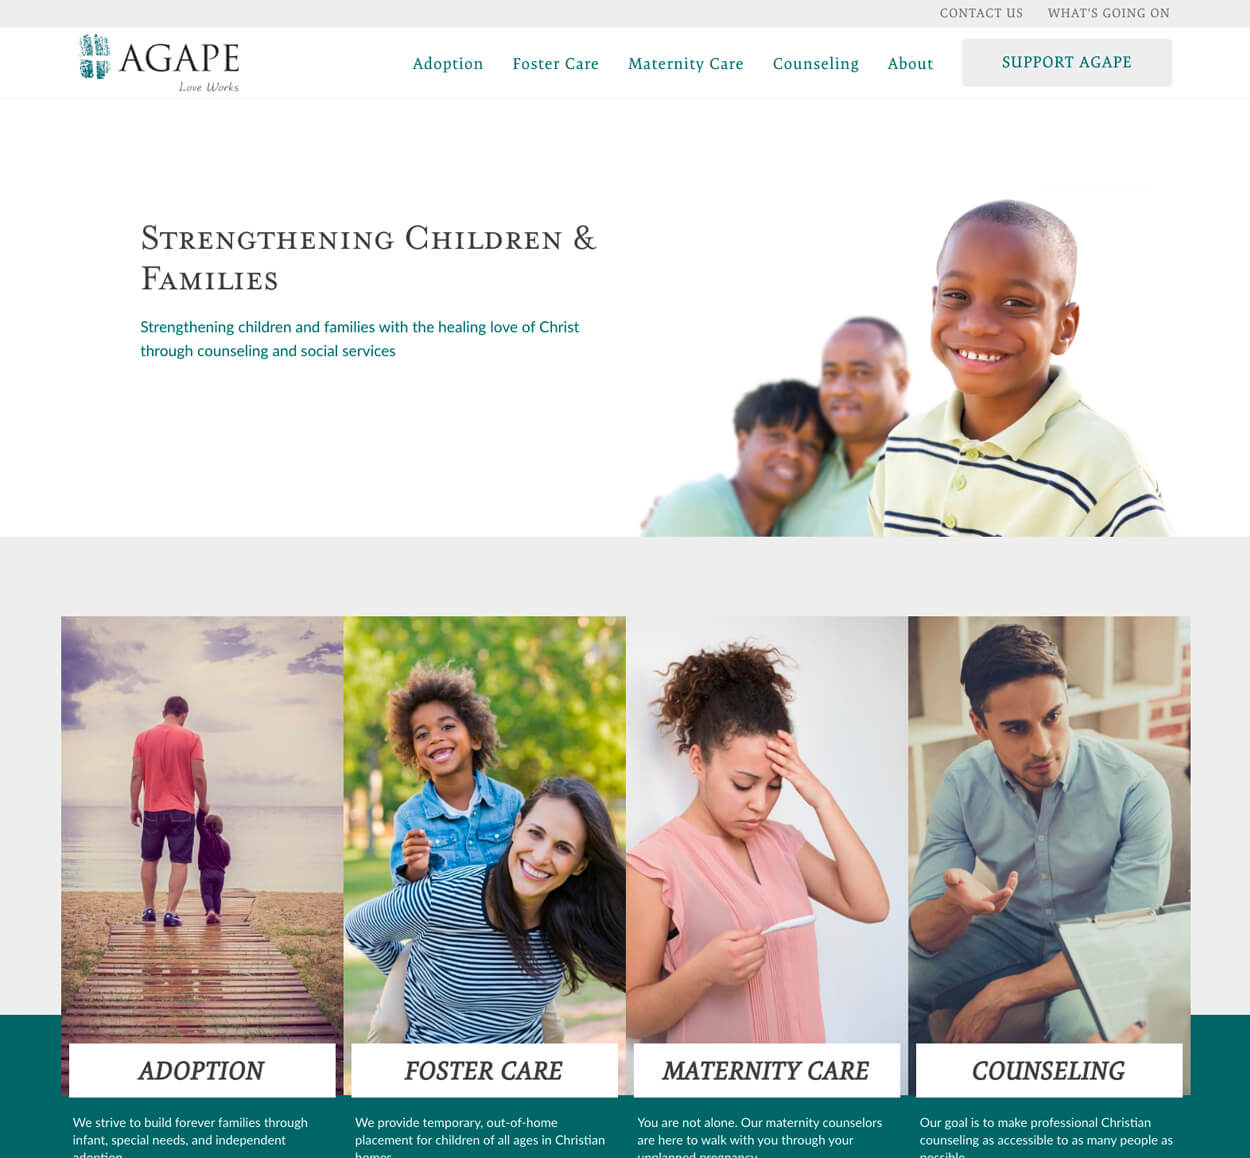 Agape - Website Screenshot